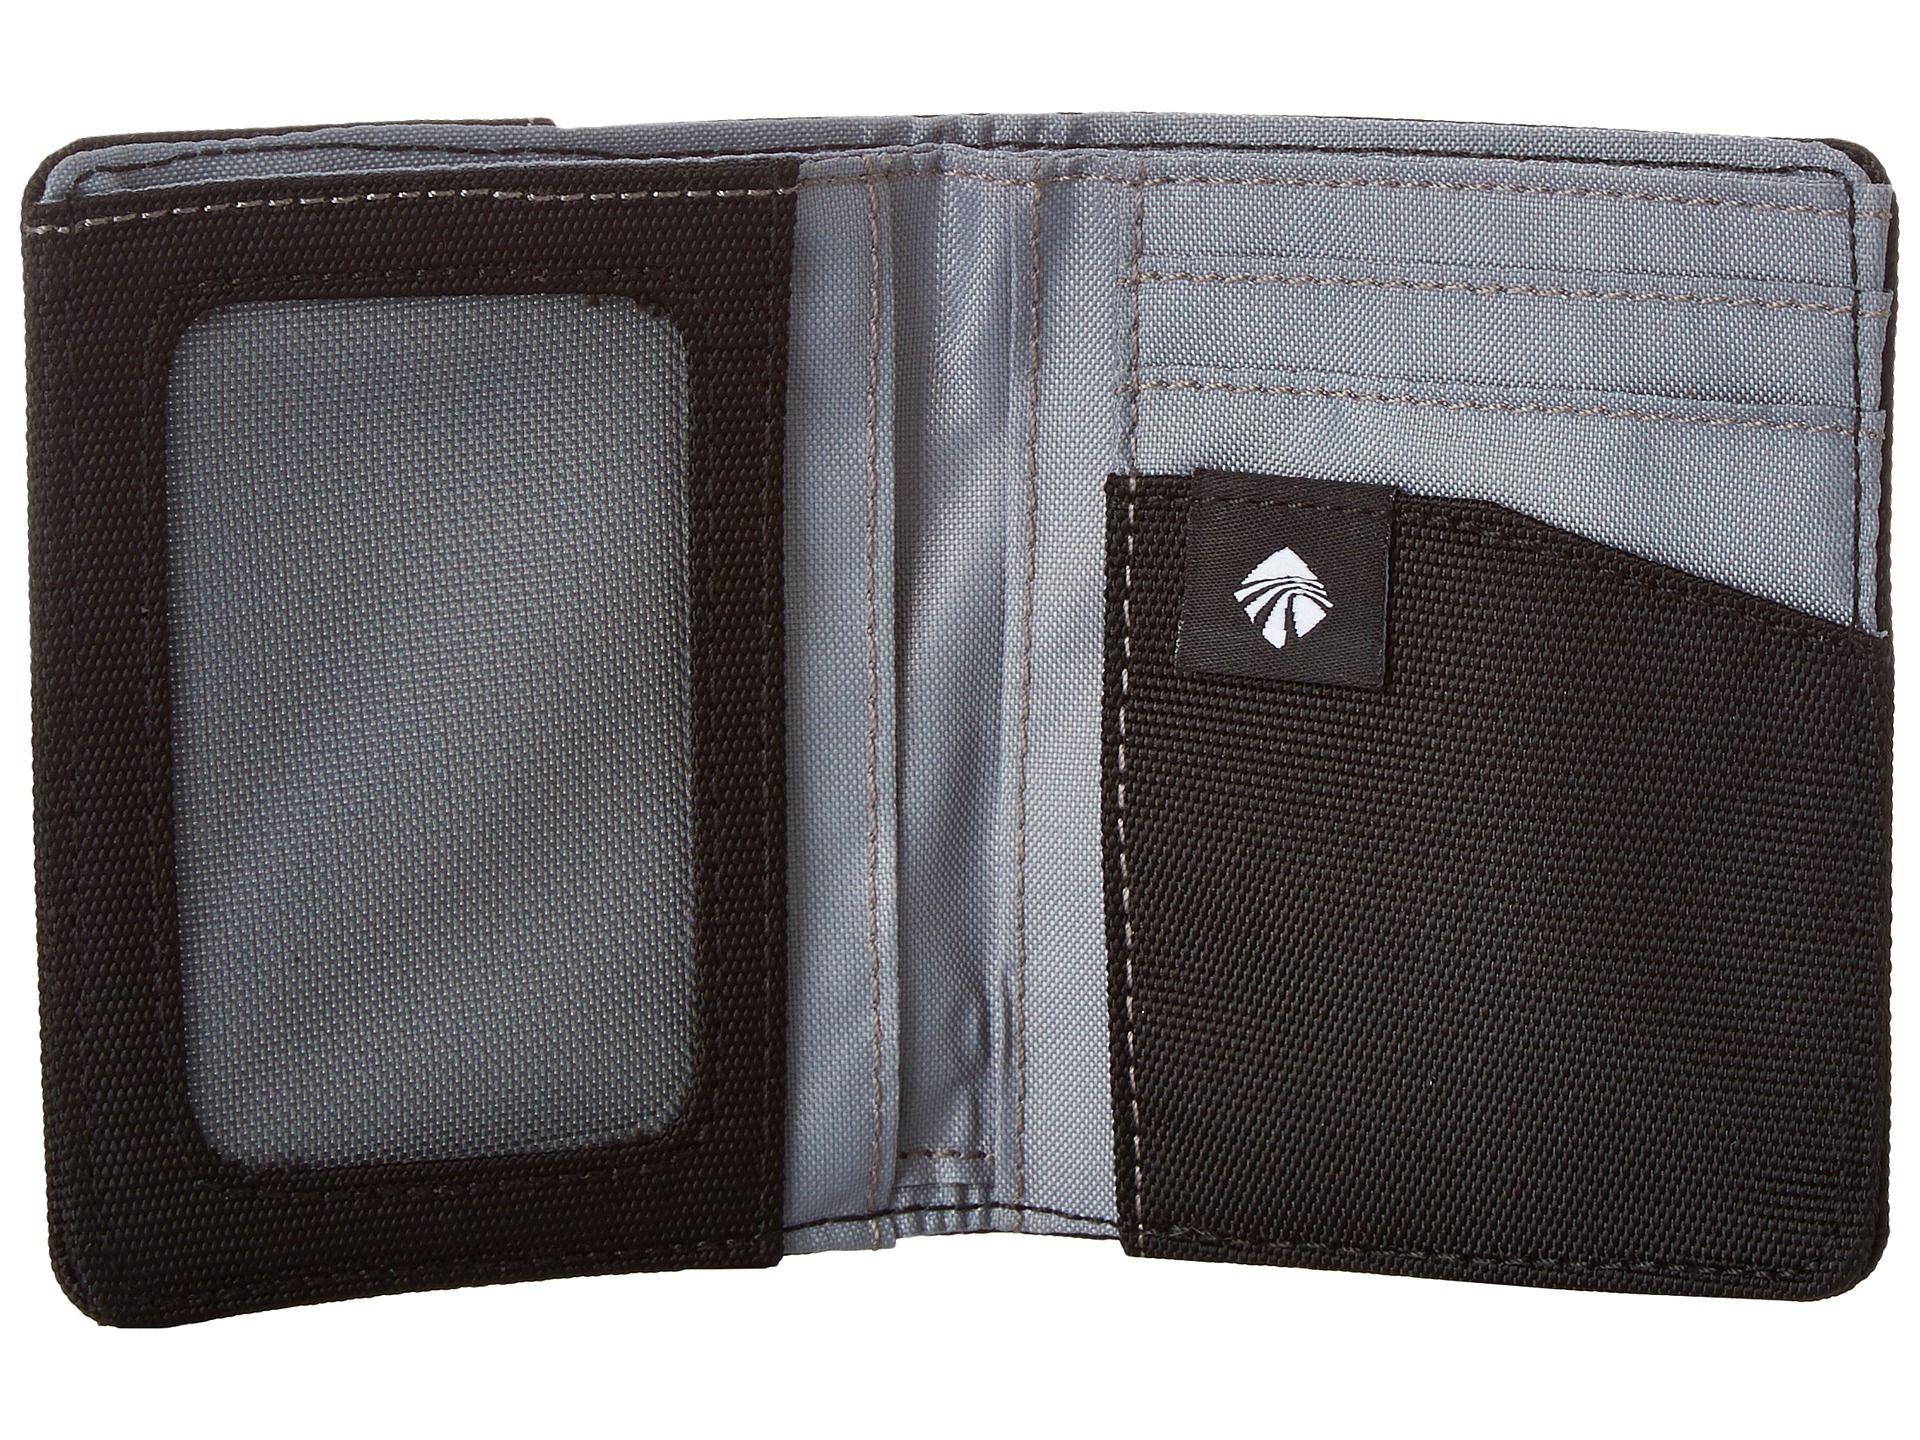 54f609dc164252 Eagle Creek Nylon Bifold Wallet | Stanford Center for Opportunity ...